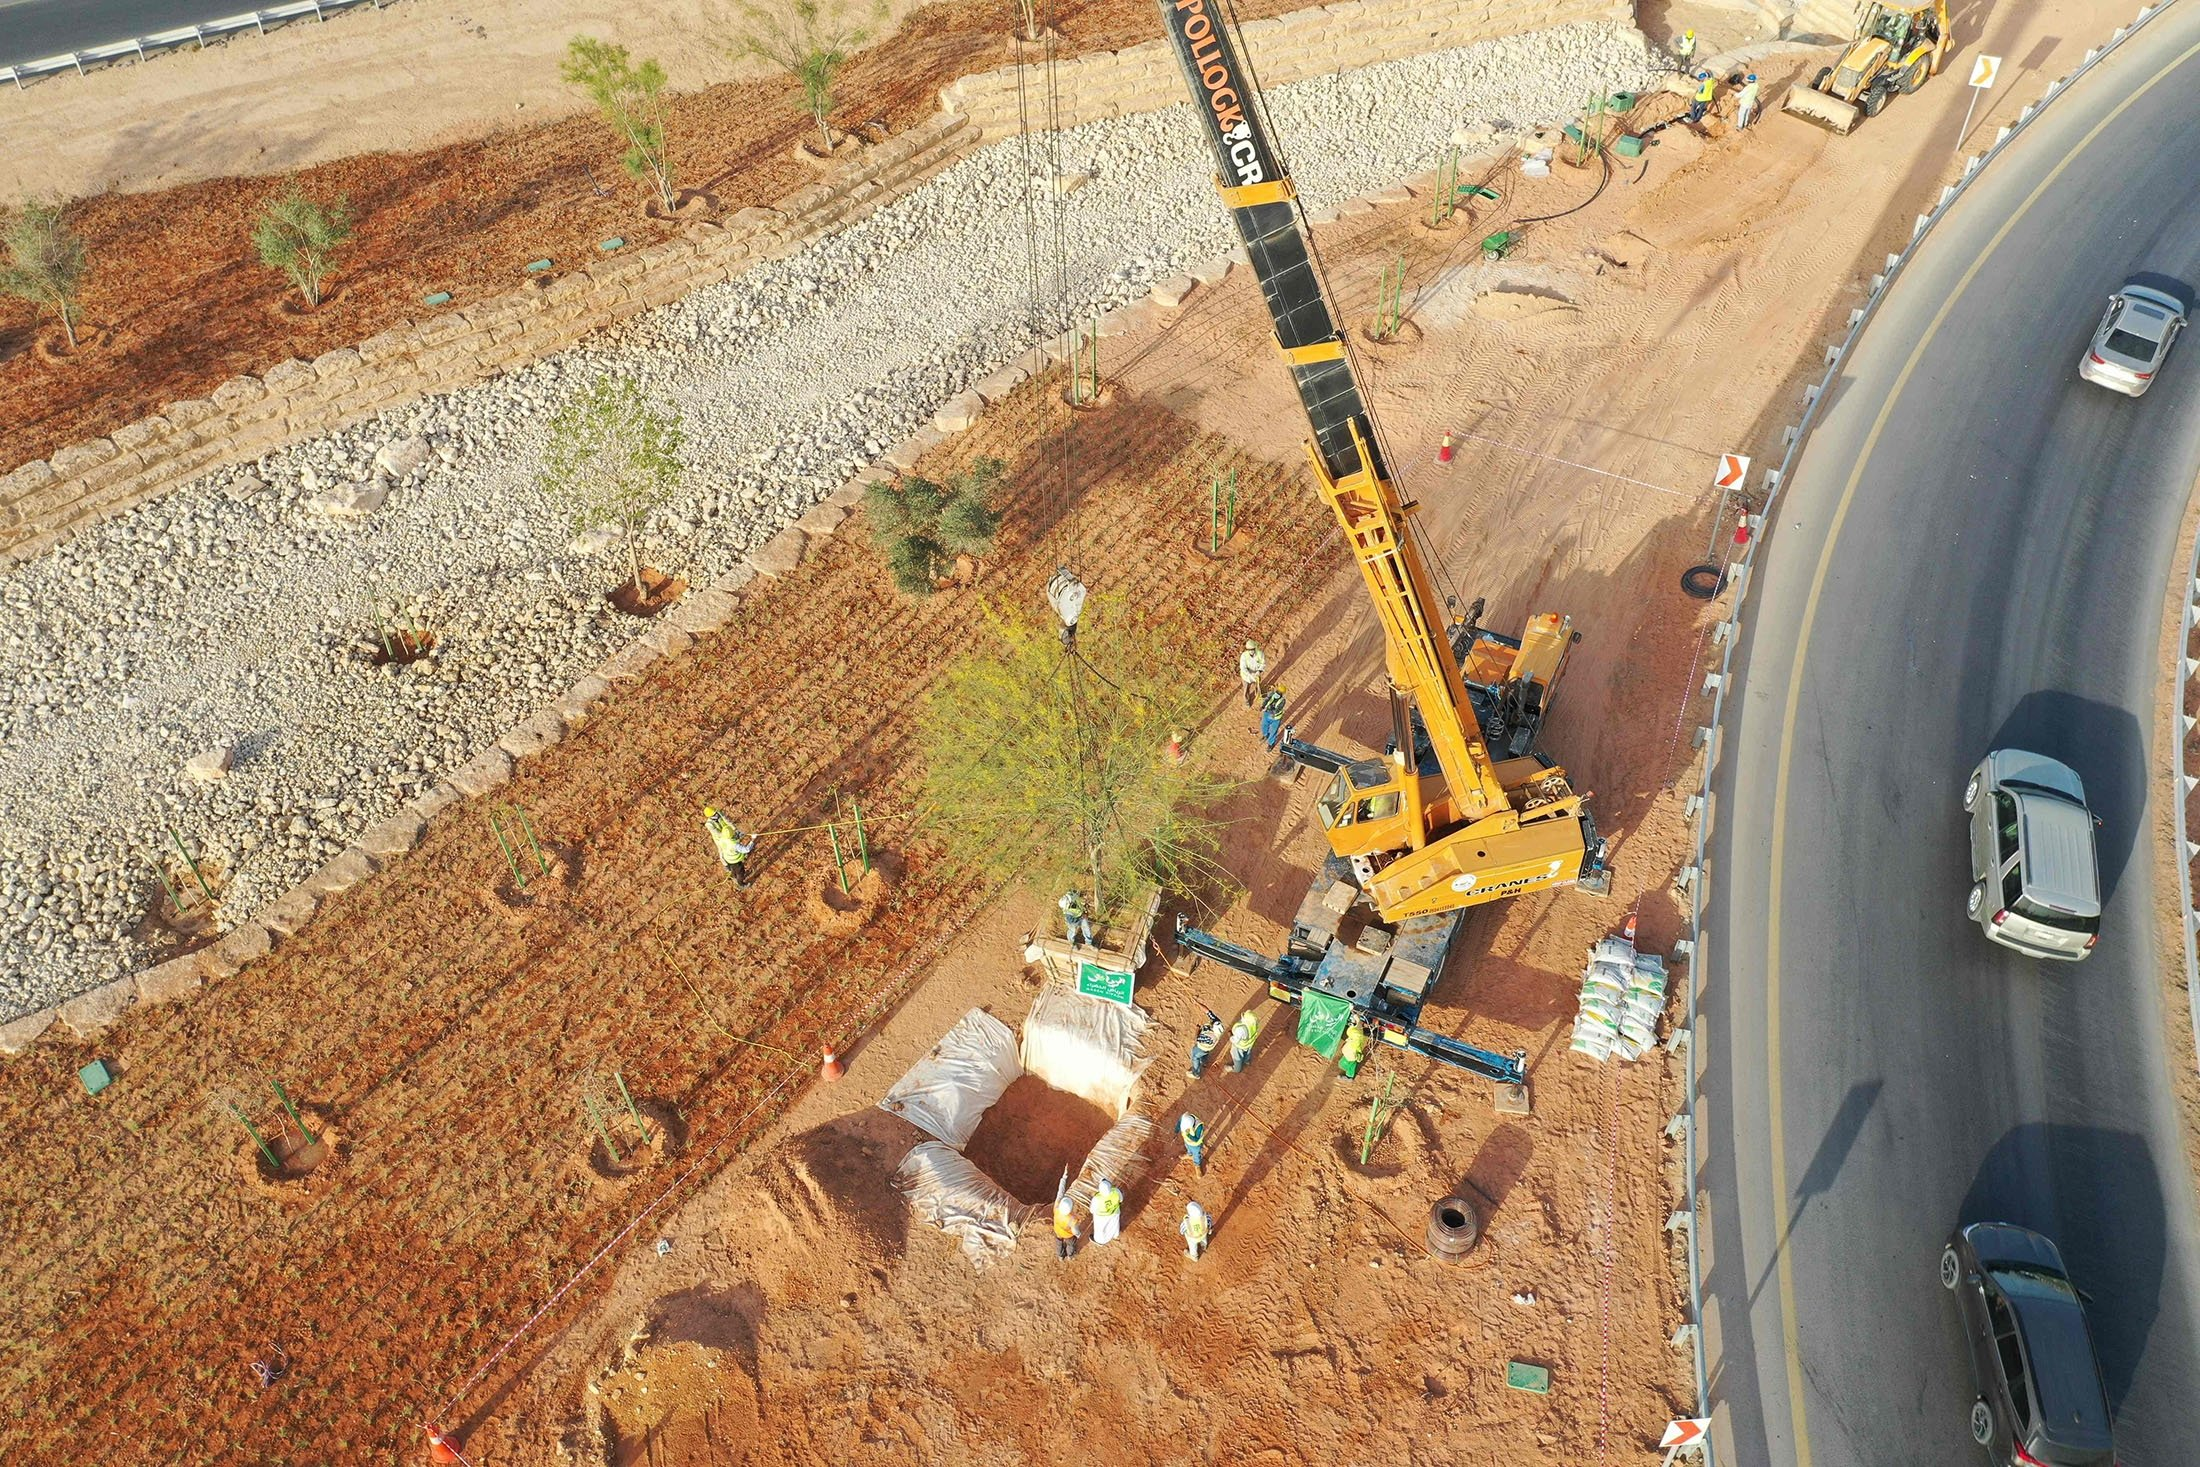 An aerial picture shows workers using a crane to plant trees in a park project by the roadside in the Saudi capital Riyadh, Saudi Arabia, March 29, 2021. (AFP Photo)